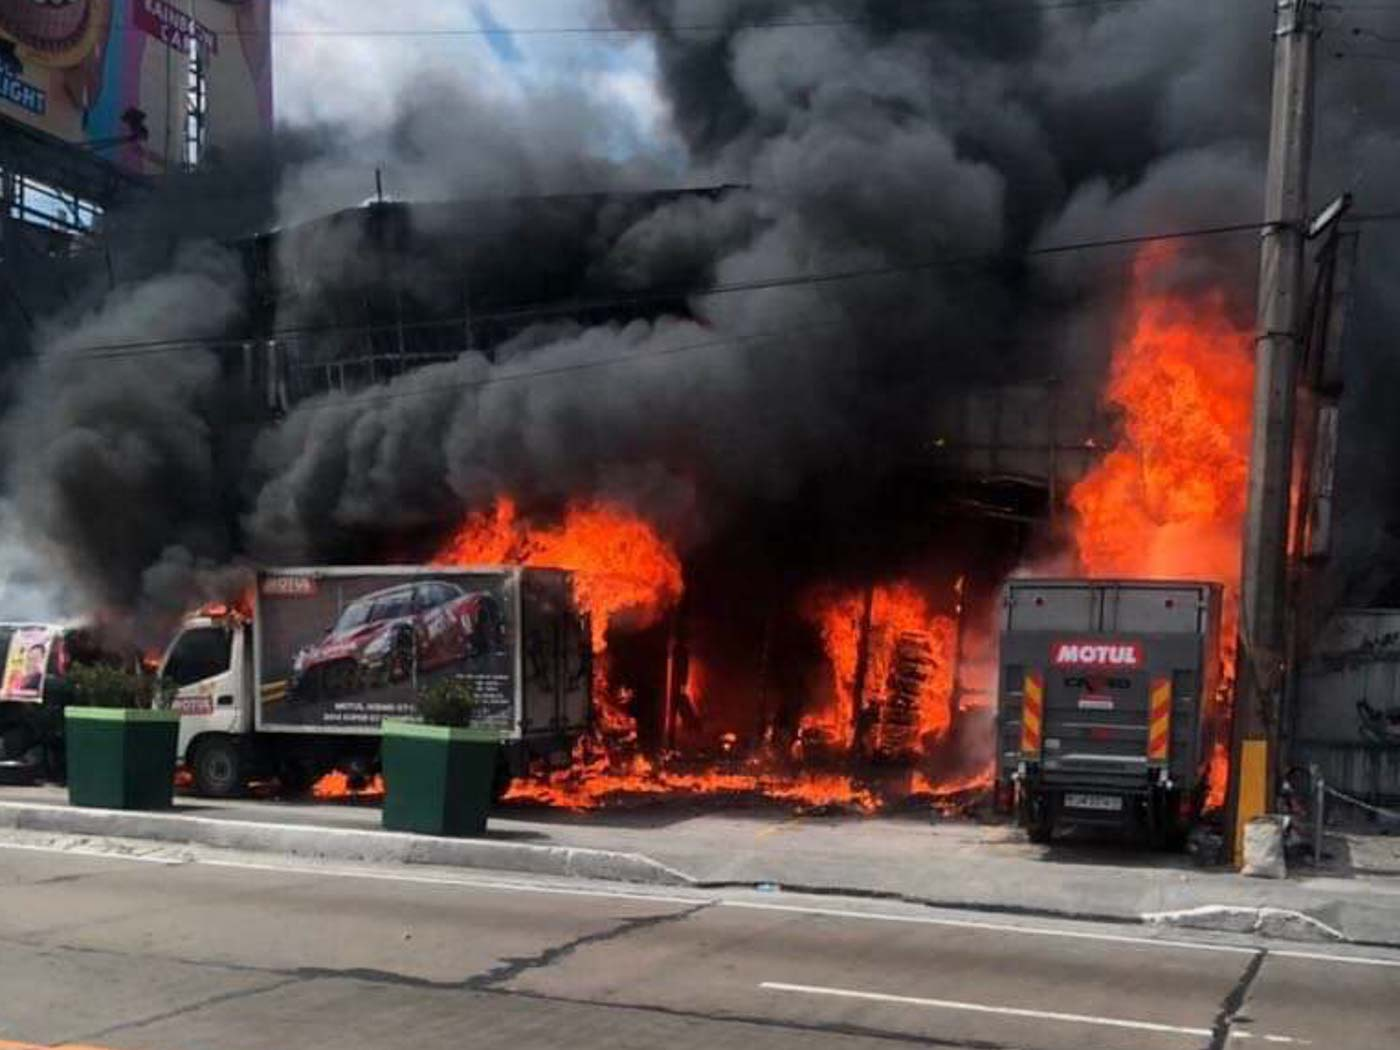 jv ejercito 39 s suv razed in mandaluyong auto shop fire. Black Bedroom Furniture Sets. Home Design Ideas